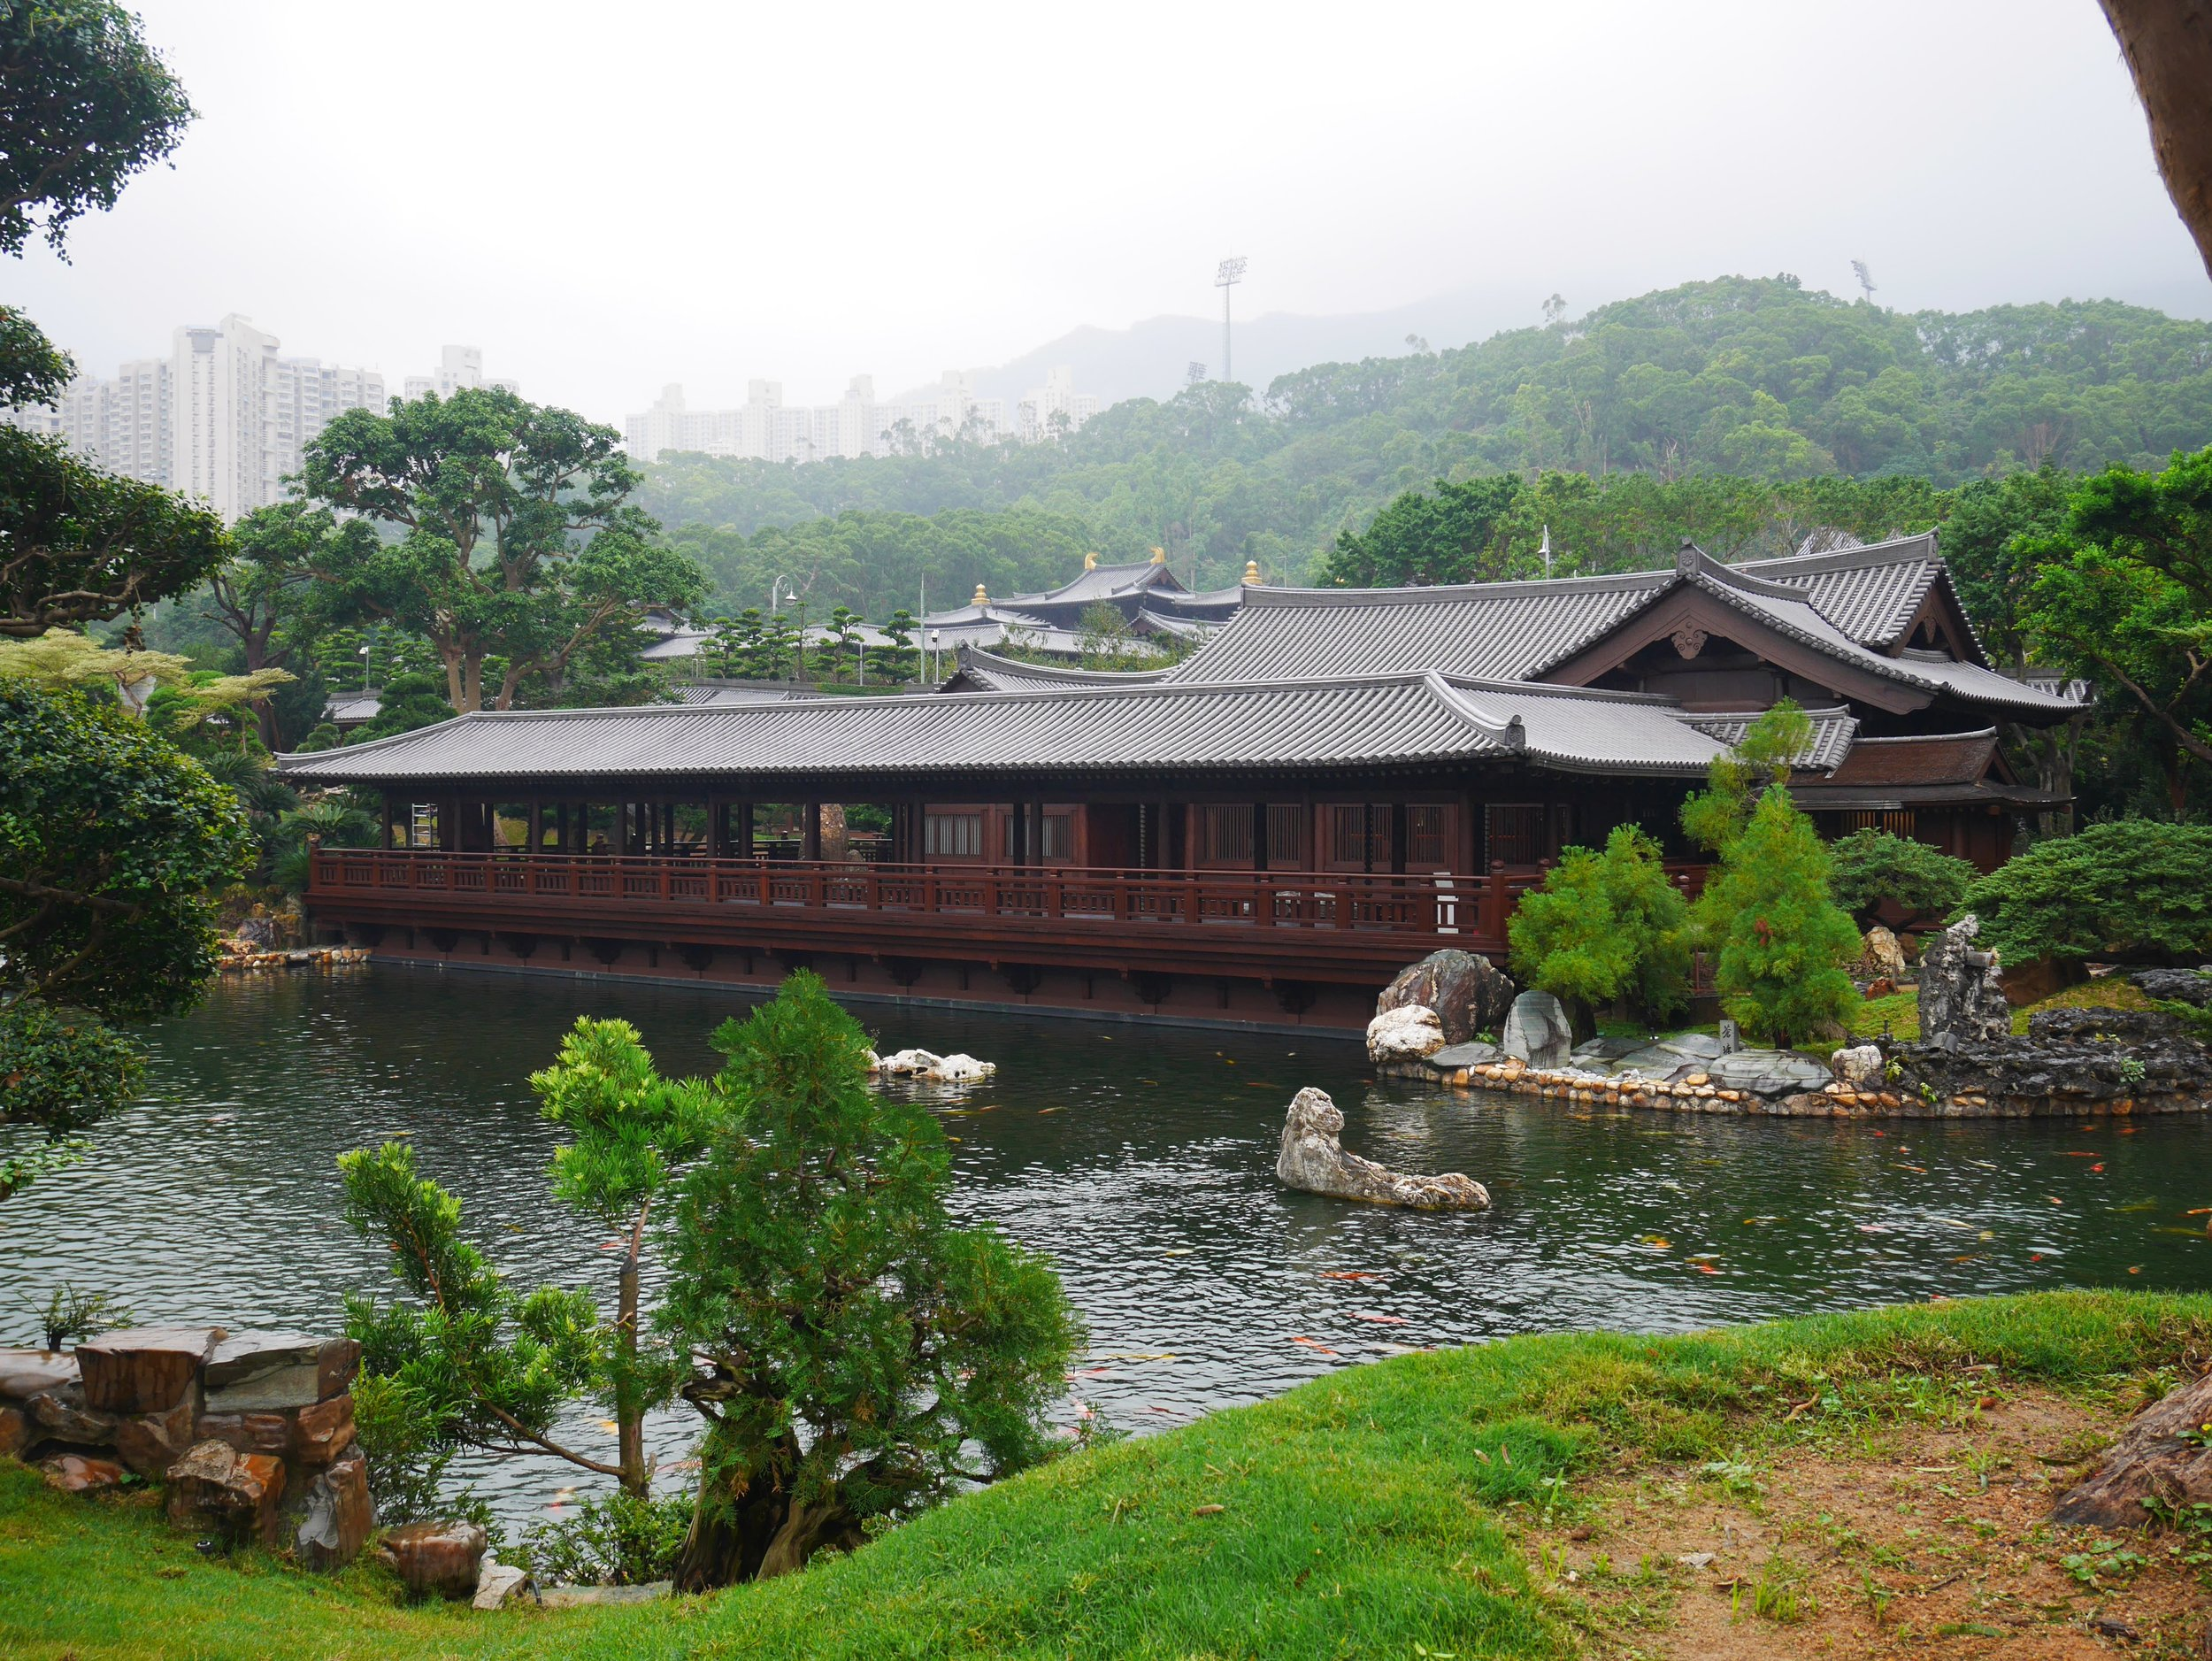 Various structures in the Chinese Garden are designed using Tang Dynasty architectural styles.